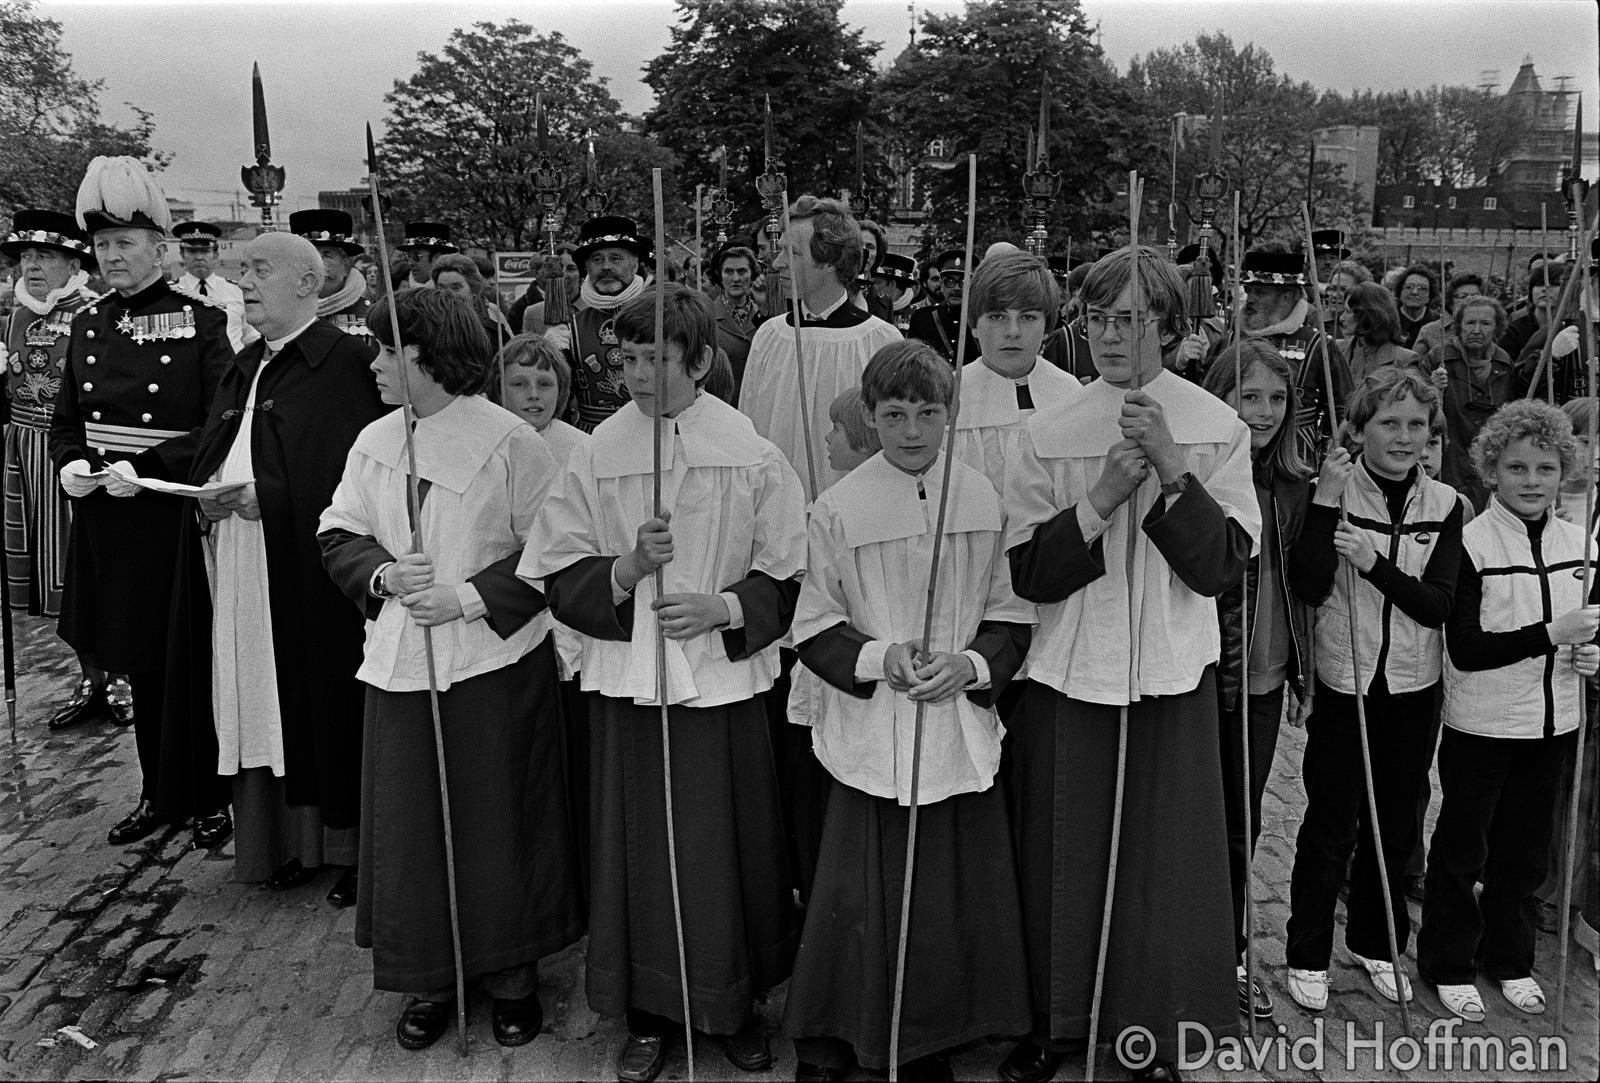 Beating the bounds at All Hallows, Byward Street, London 28 May 1981.